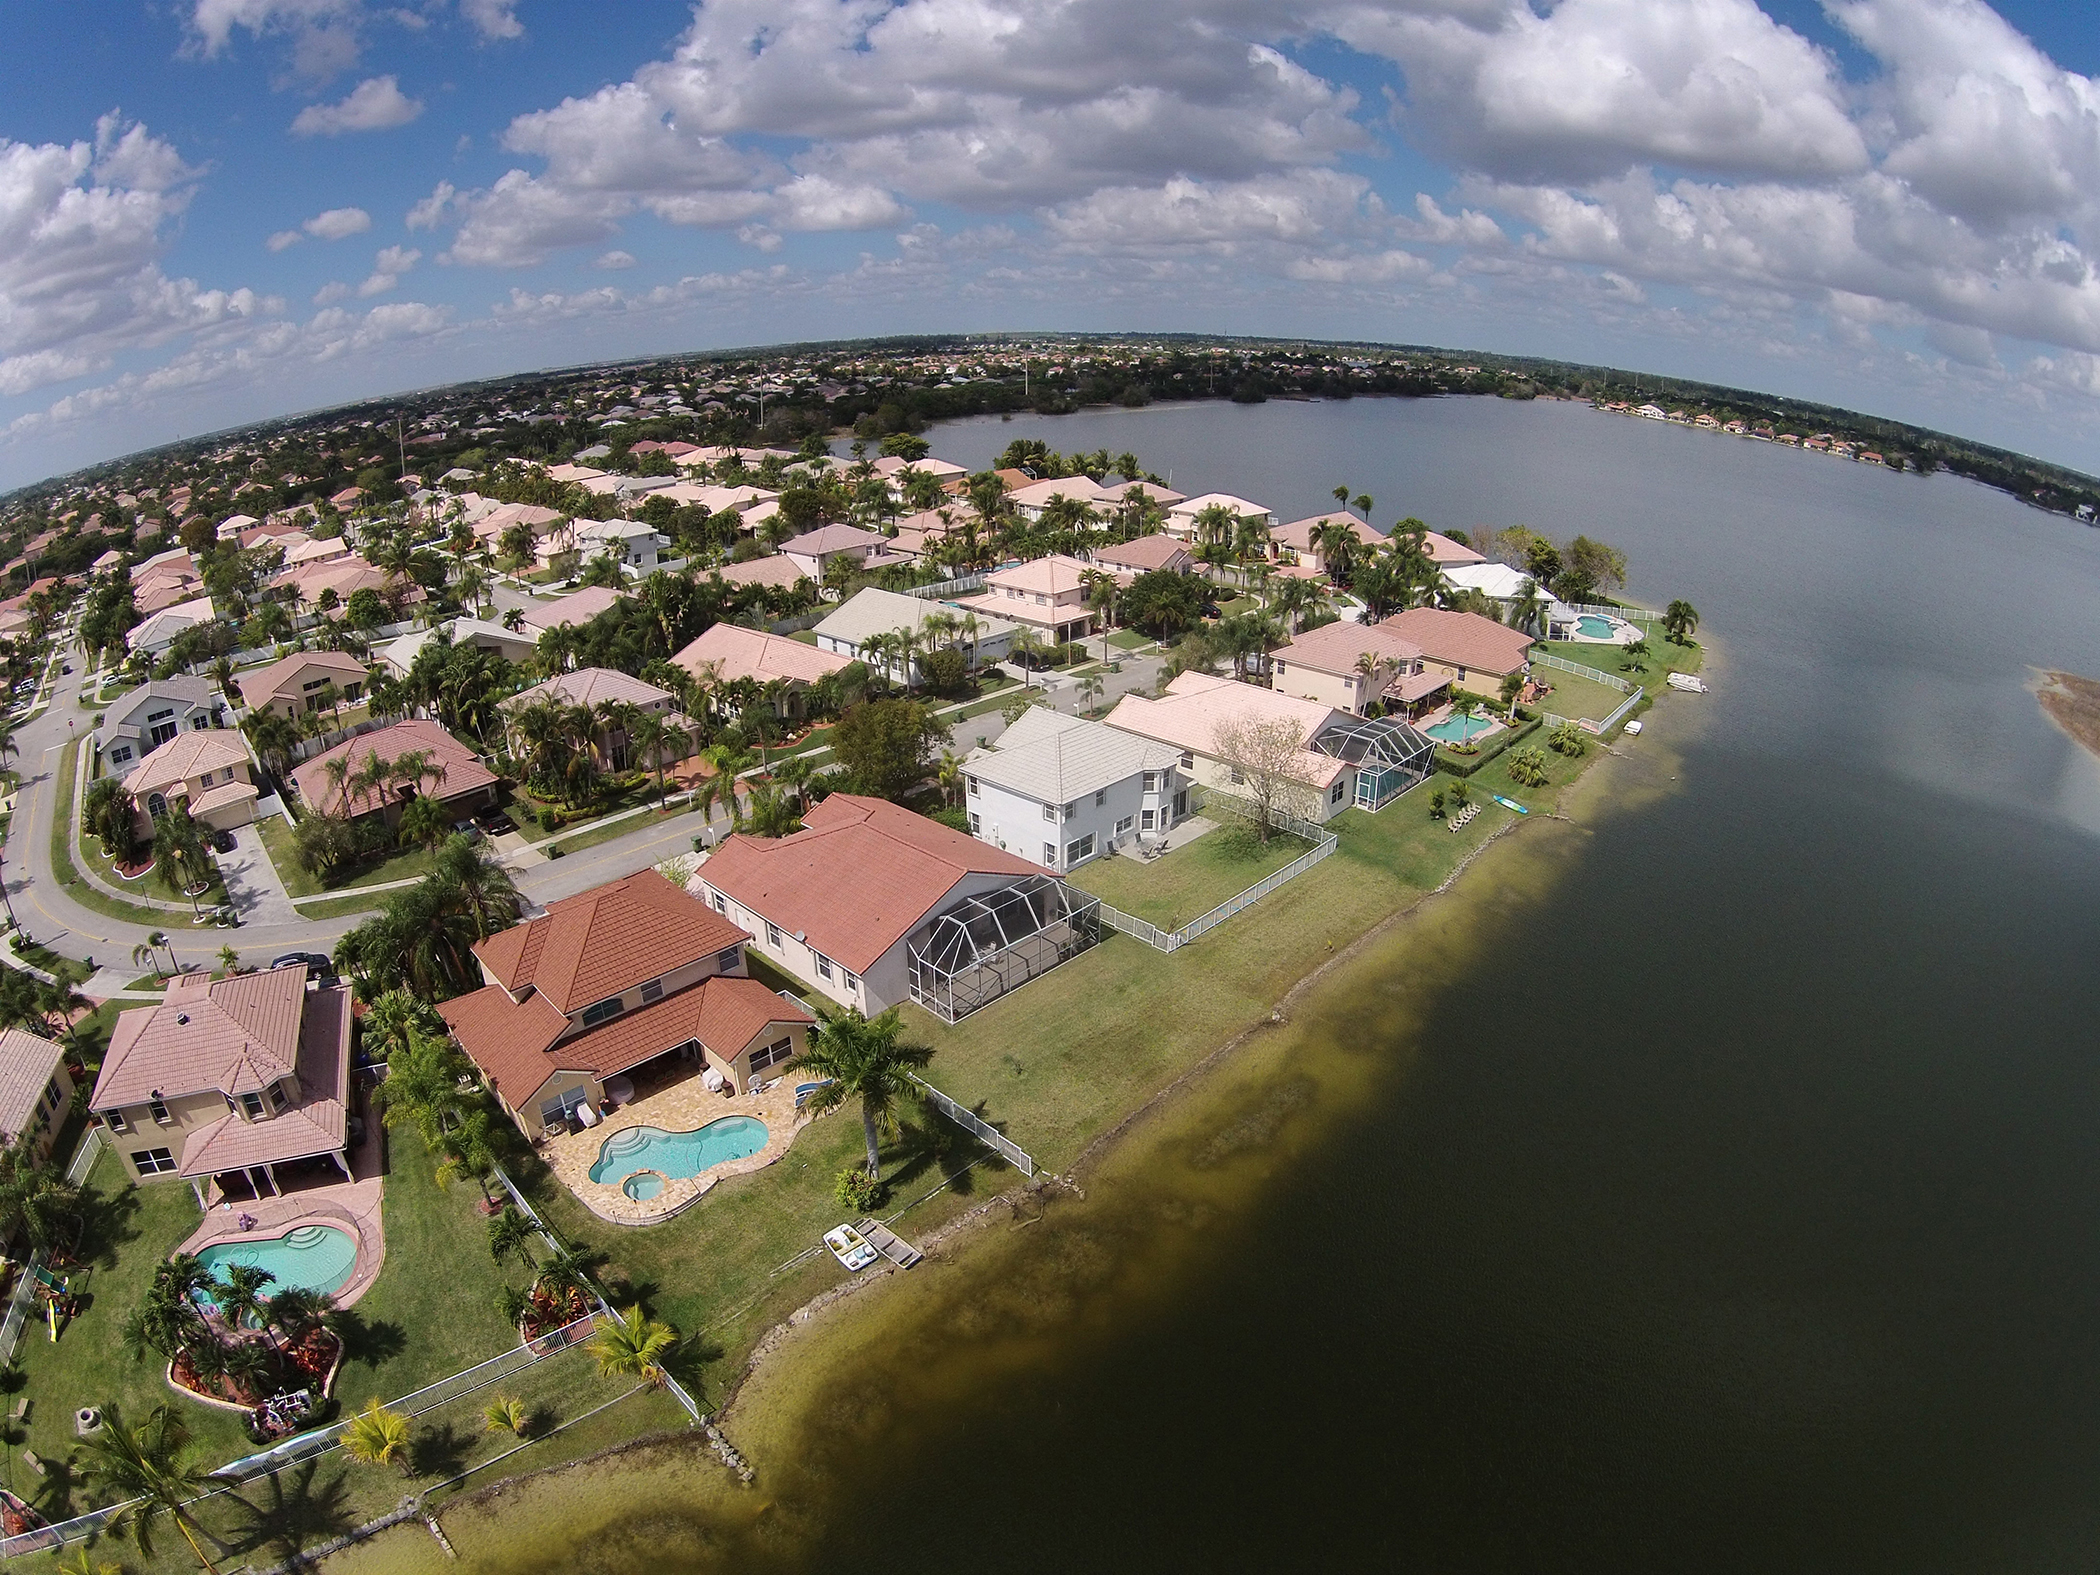 Florida 39 s homeowners choice secures nearly 1b in reinsurance for Homeowner choice